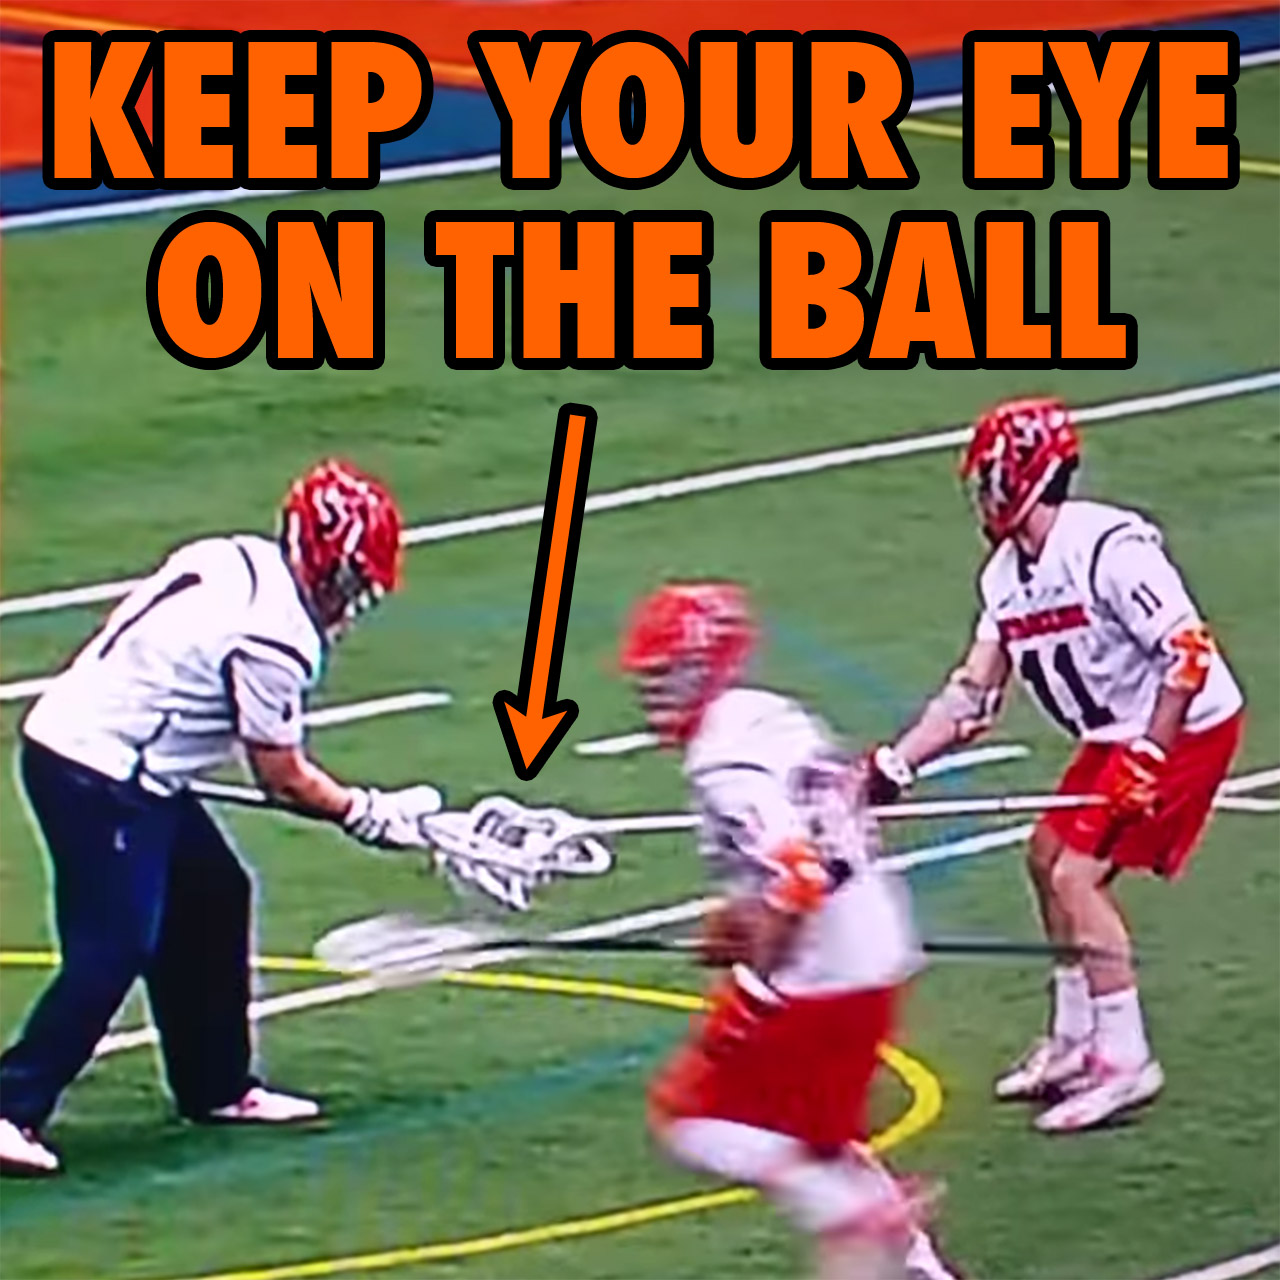 Syracuse lacrosse team pulls the hidden-ball trick on Virginia.